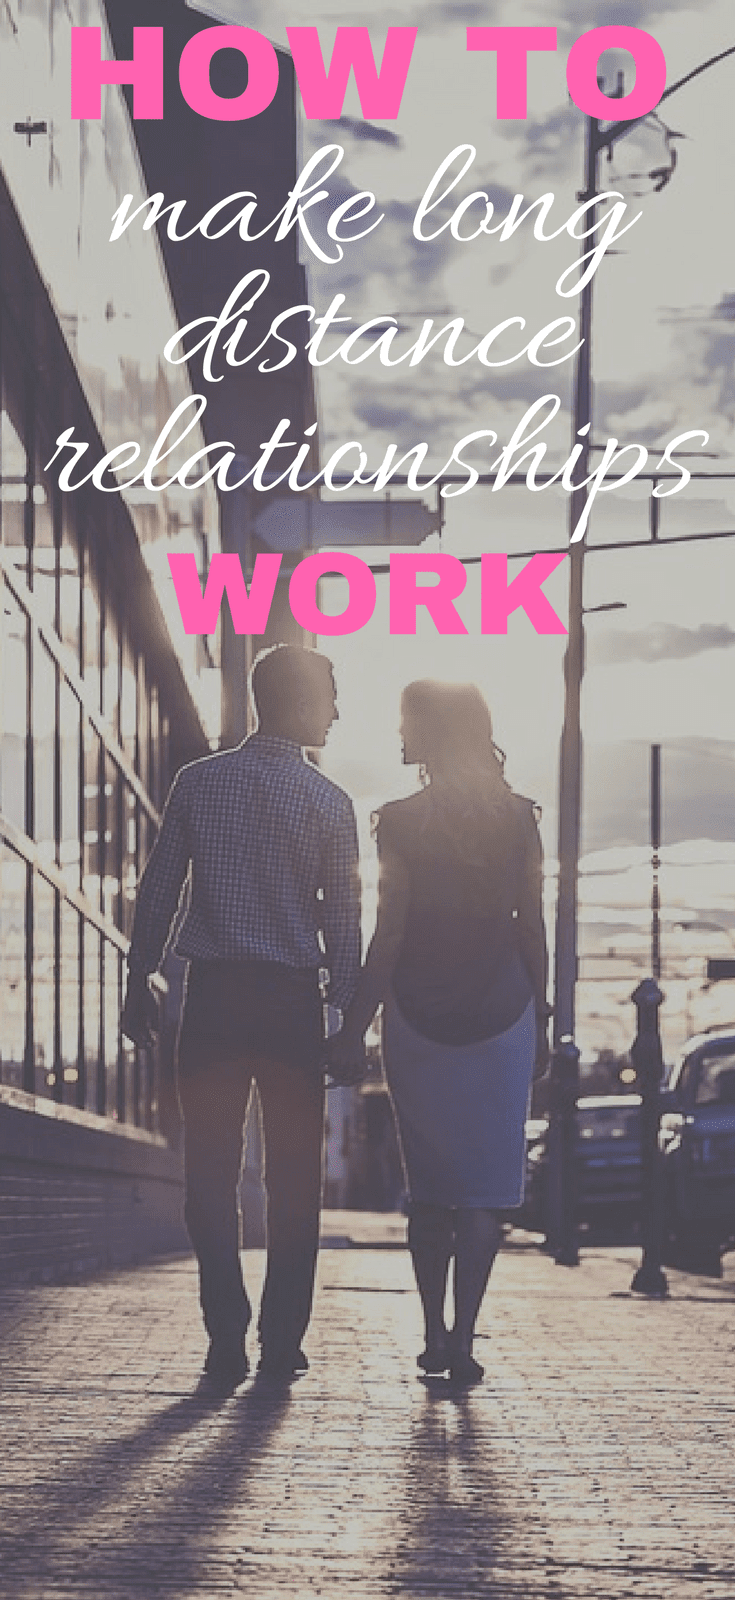 How Can You Make Your Long Distance Relationships Work?